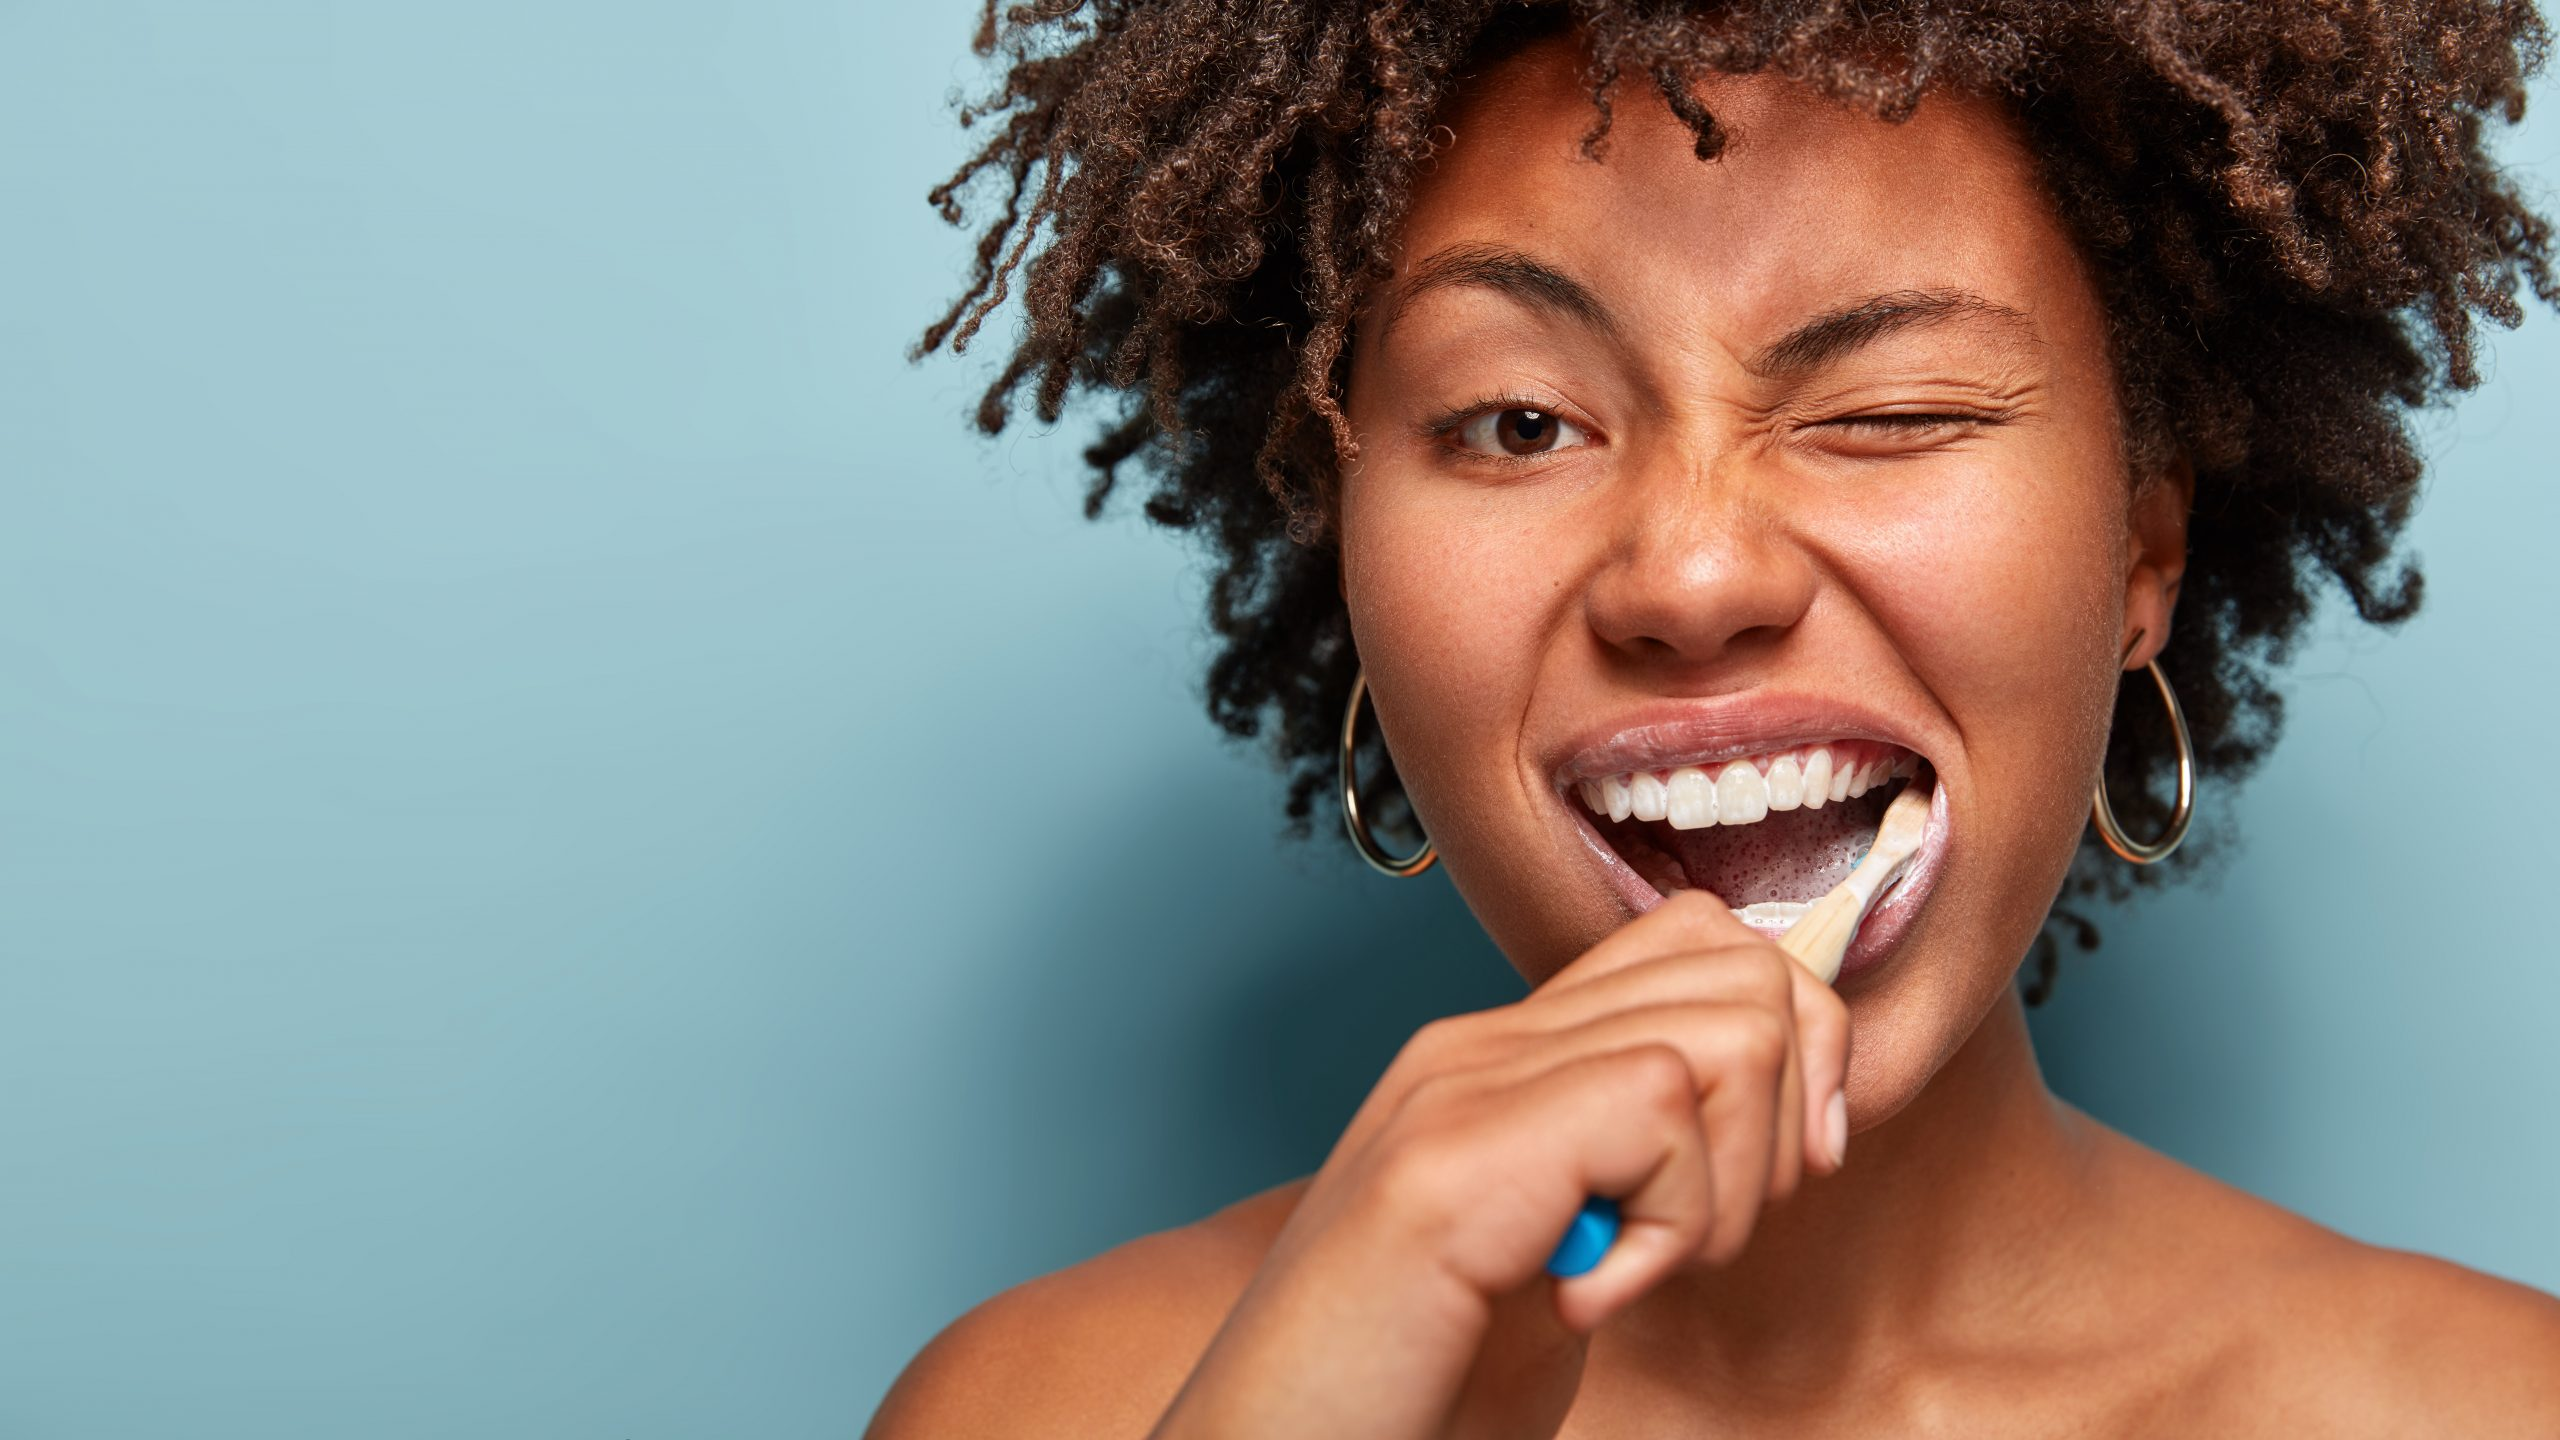 Tooth care concept. Slim naked young woman blinks eye, has daily routine after shower, brushes teeth with tootbrush, has healthy skin, isolated over blue background, free space for your promotion.